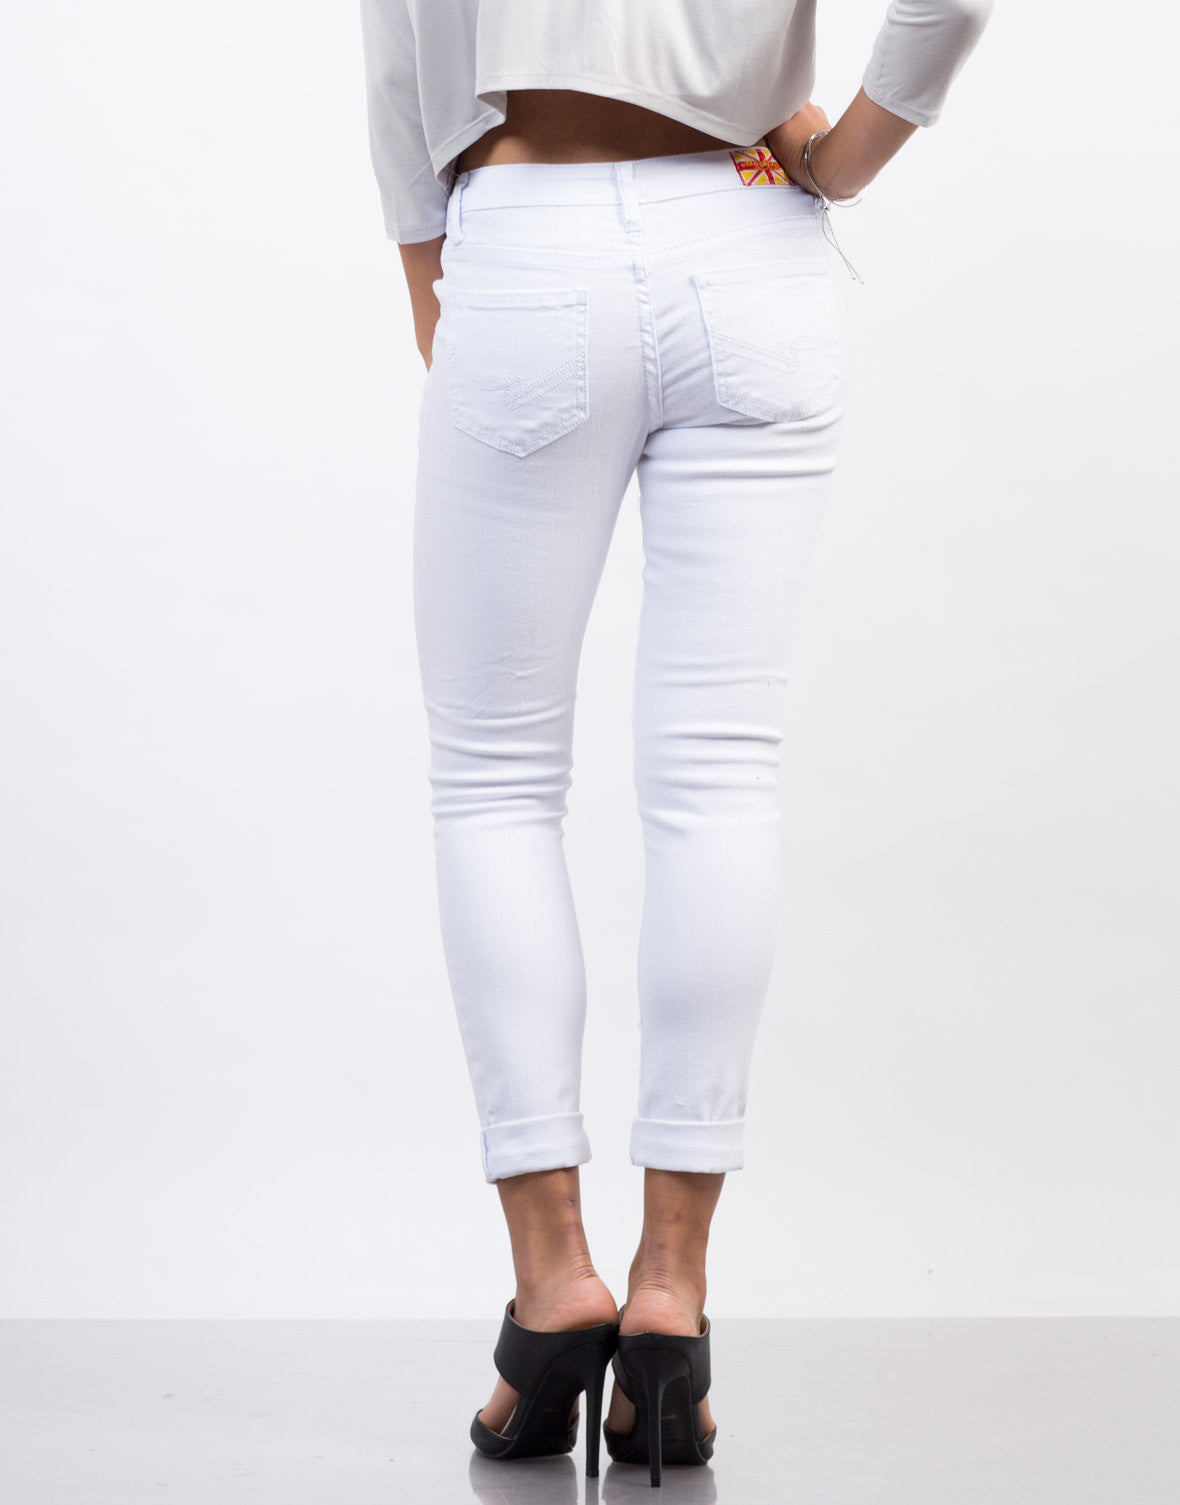 Back View of White Mid-Rise Destroyed Jeans